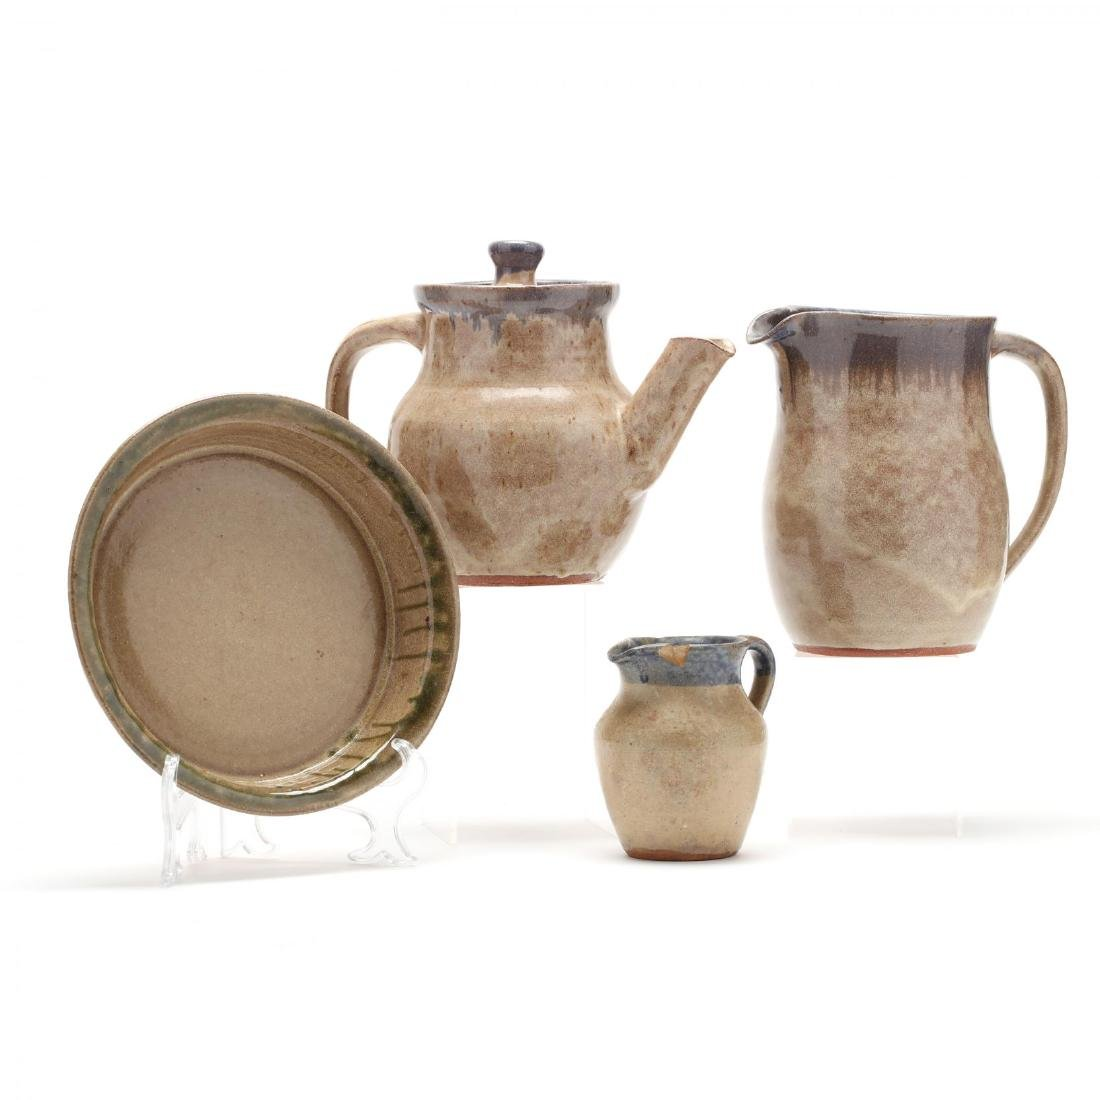 Four Hilton Pottery Tableware Vessels